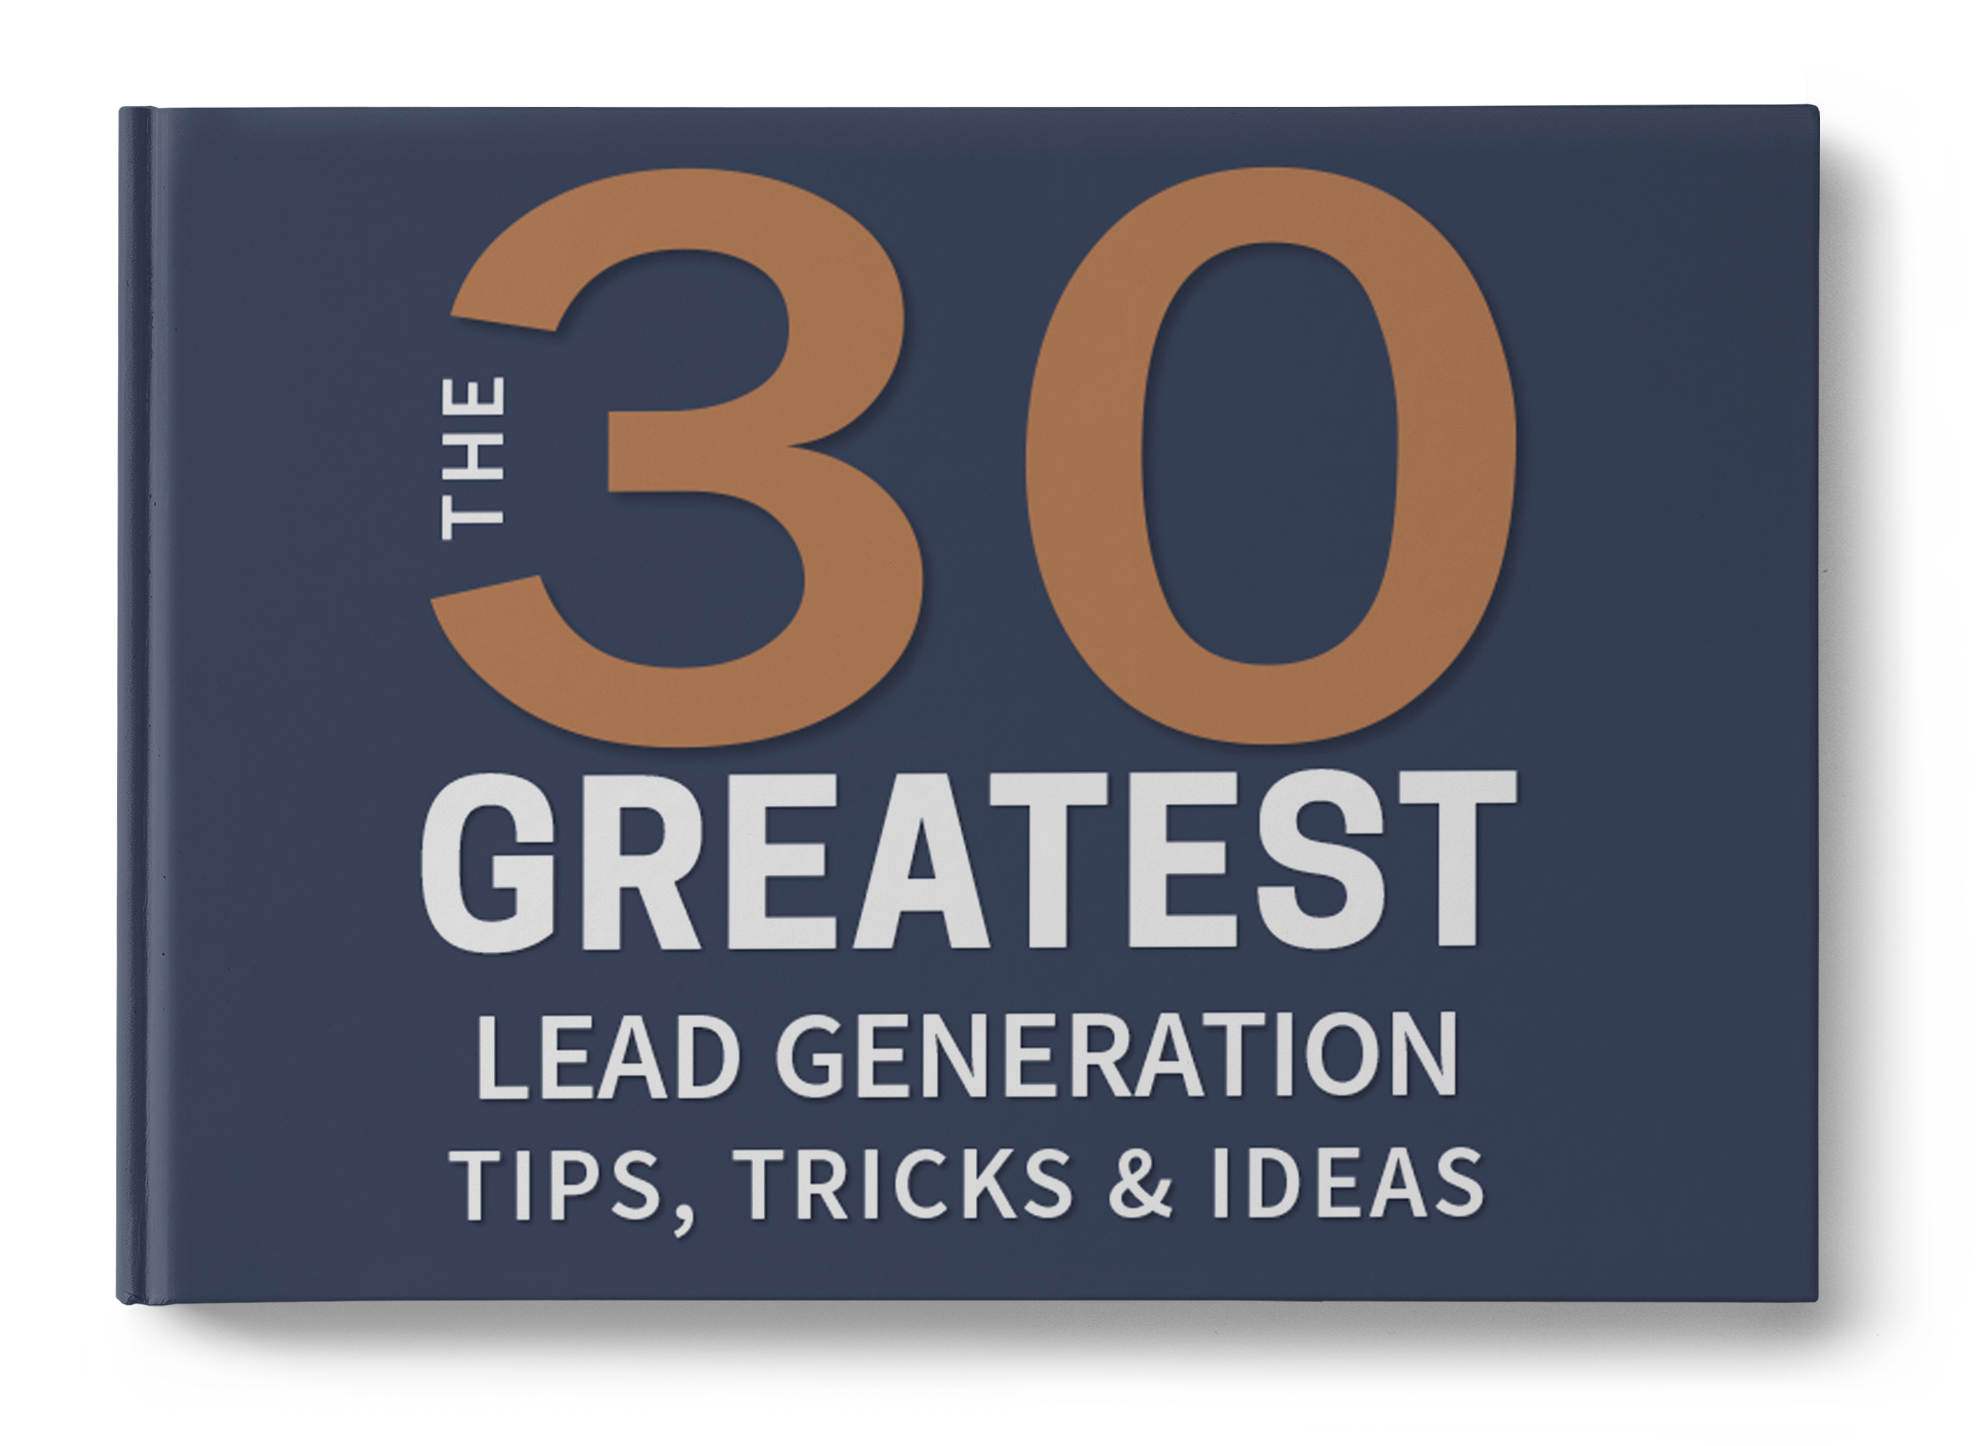 The 30 Greatest Lead Generation Tips & Tricks